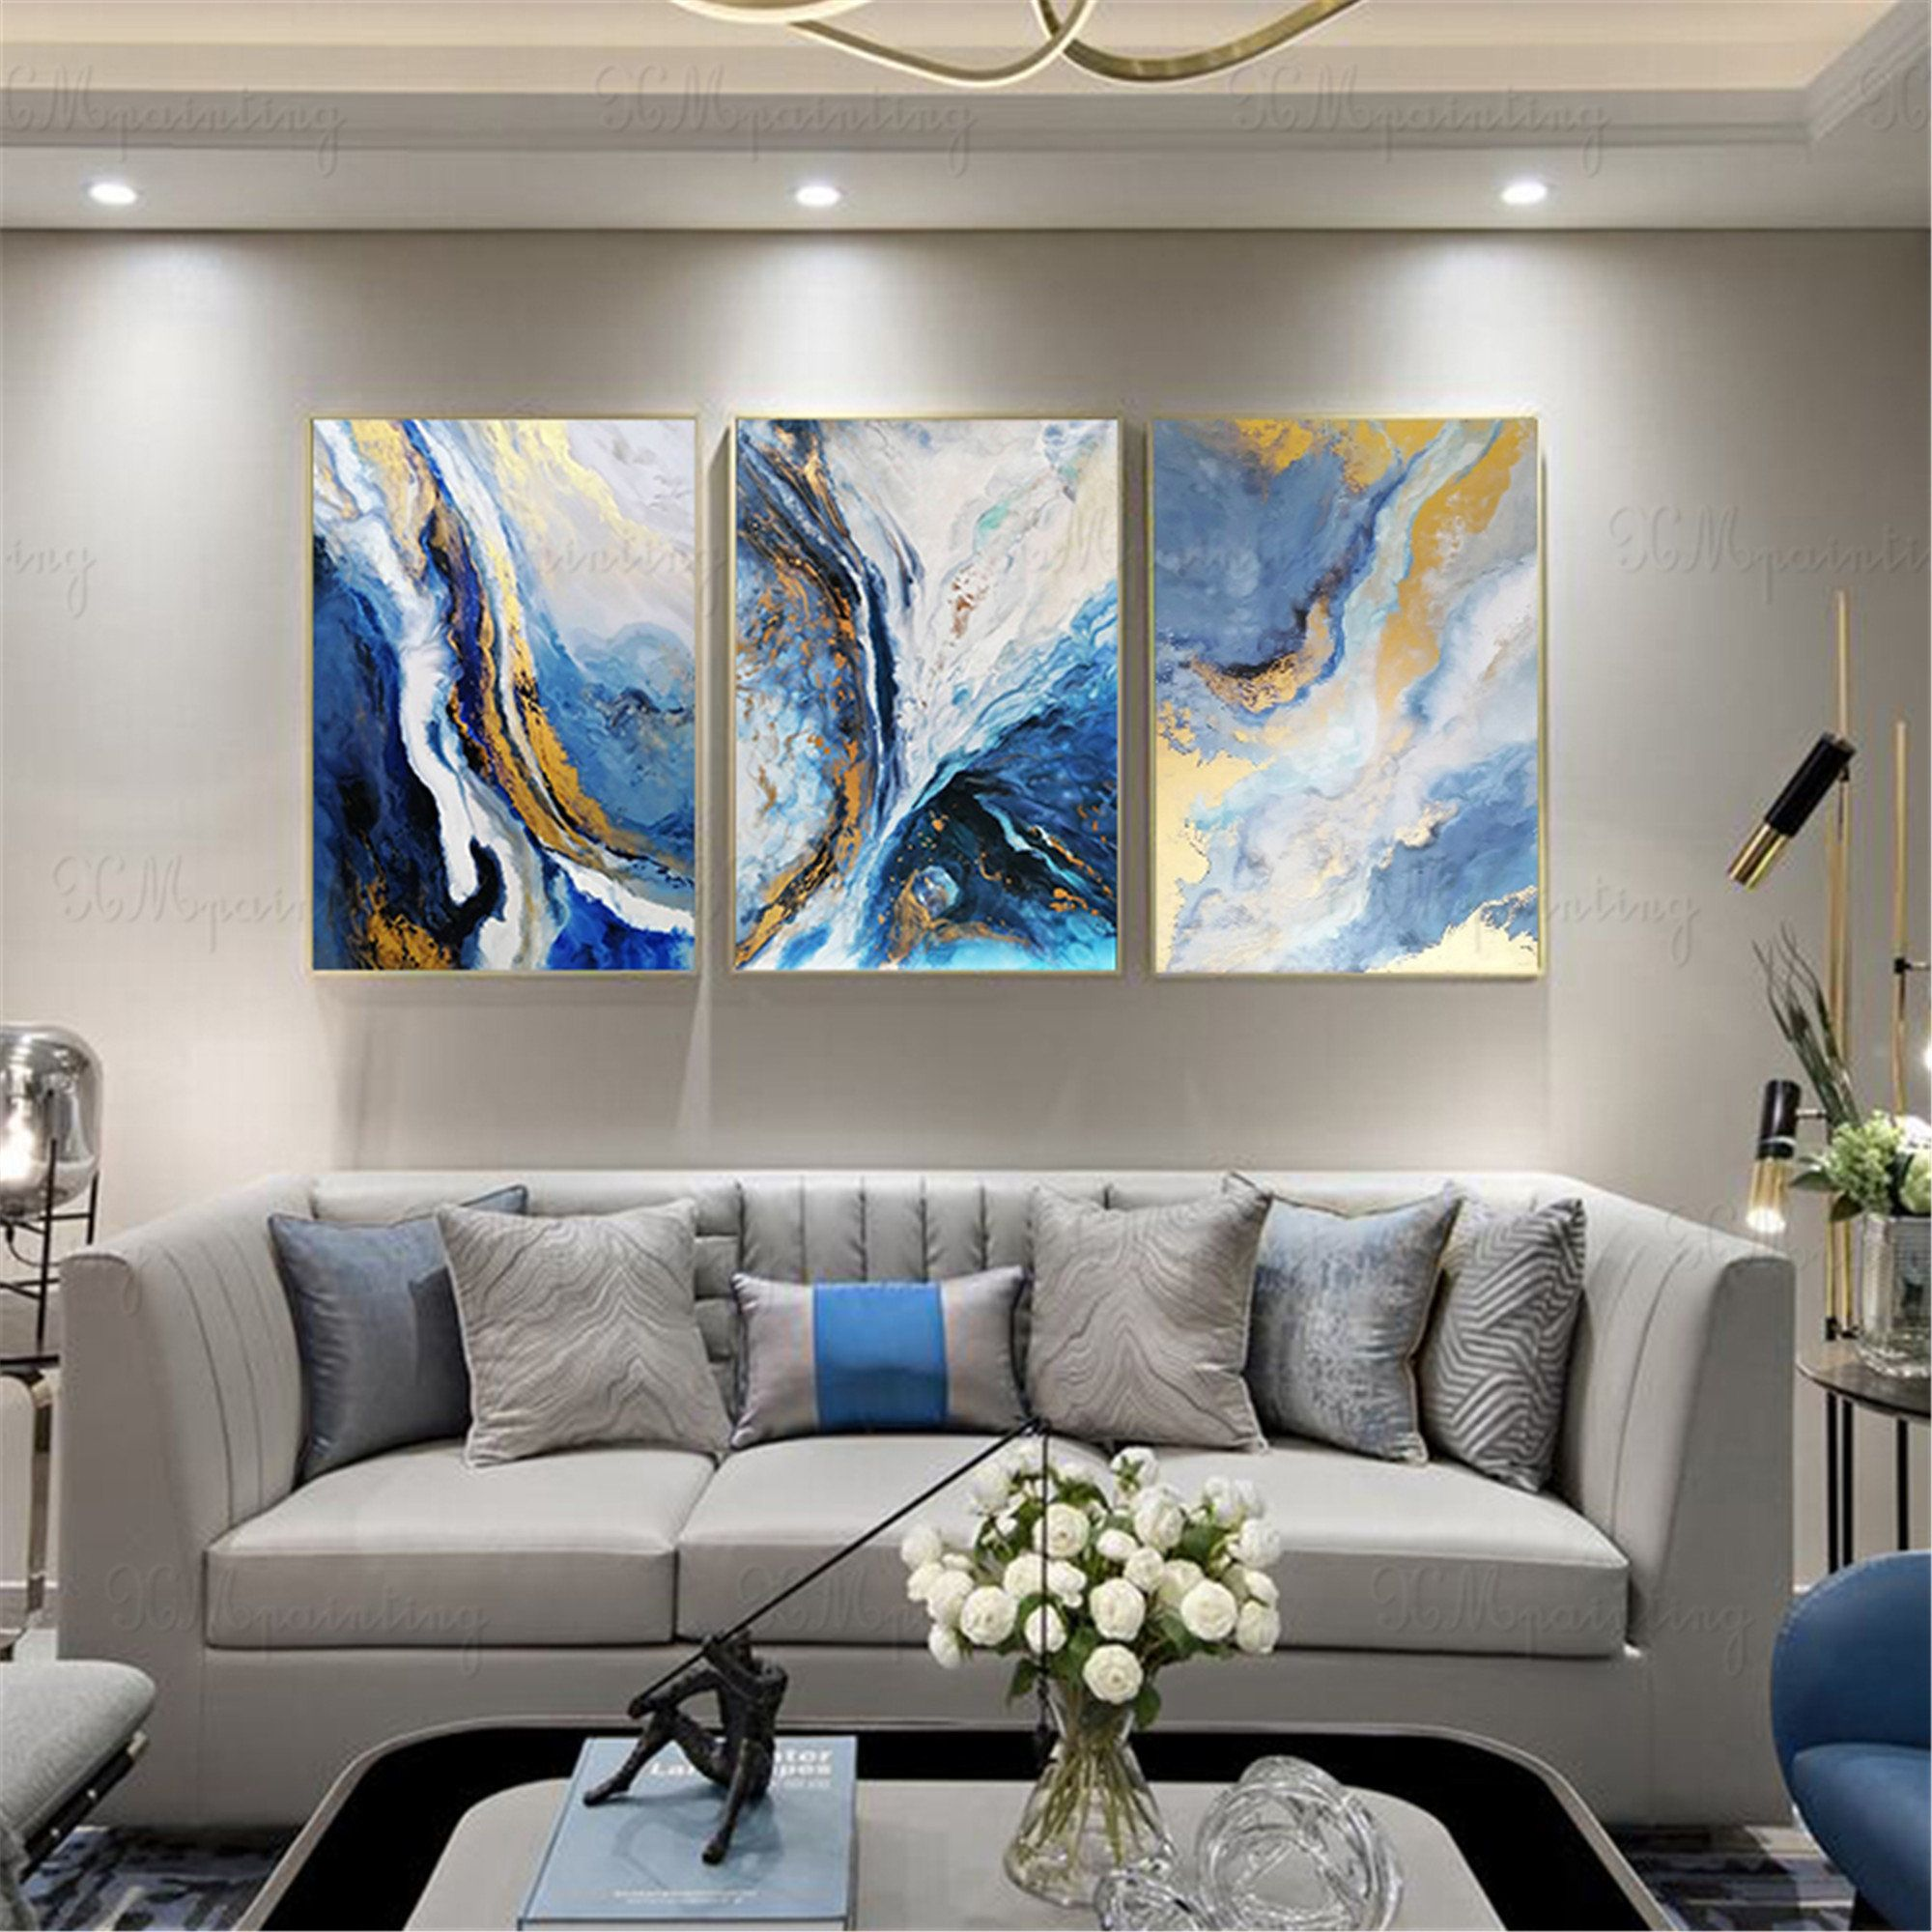 3 Pieces Gold Art Abstract Painting Canvas Wall Art Pictures For Living Room Wall Decor Bedroom Home Decor Original Acrylic Blue Texture Wall Decor Bedroom Wall Decor Living Room Living Room Pictures